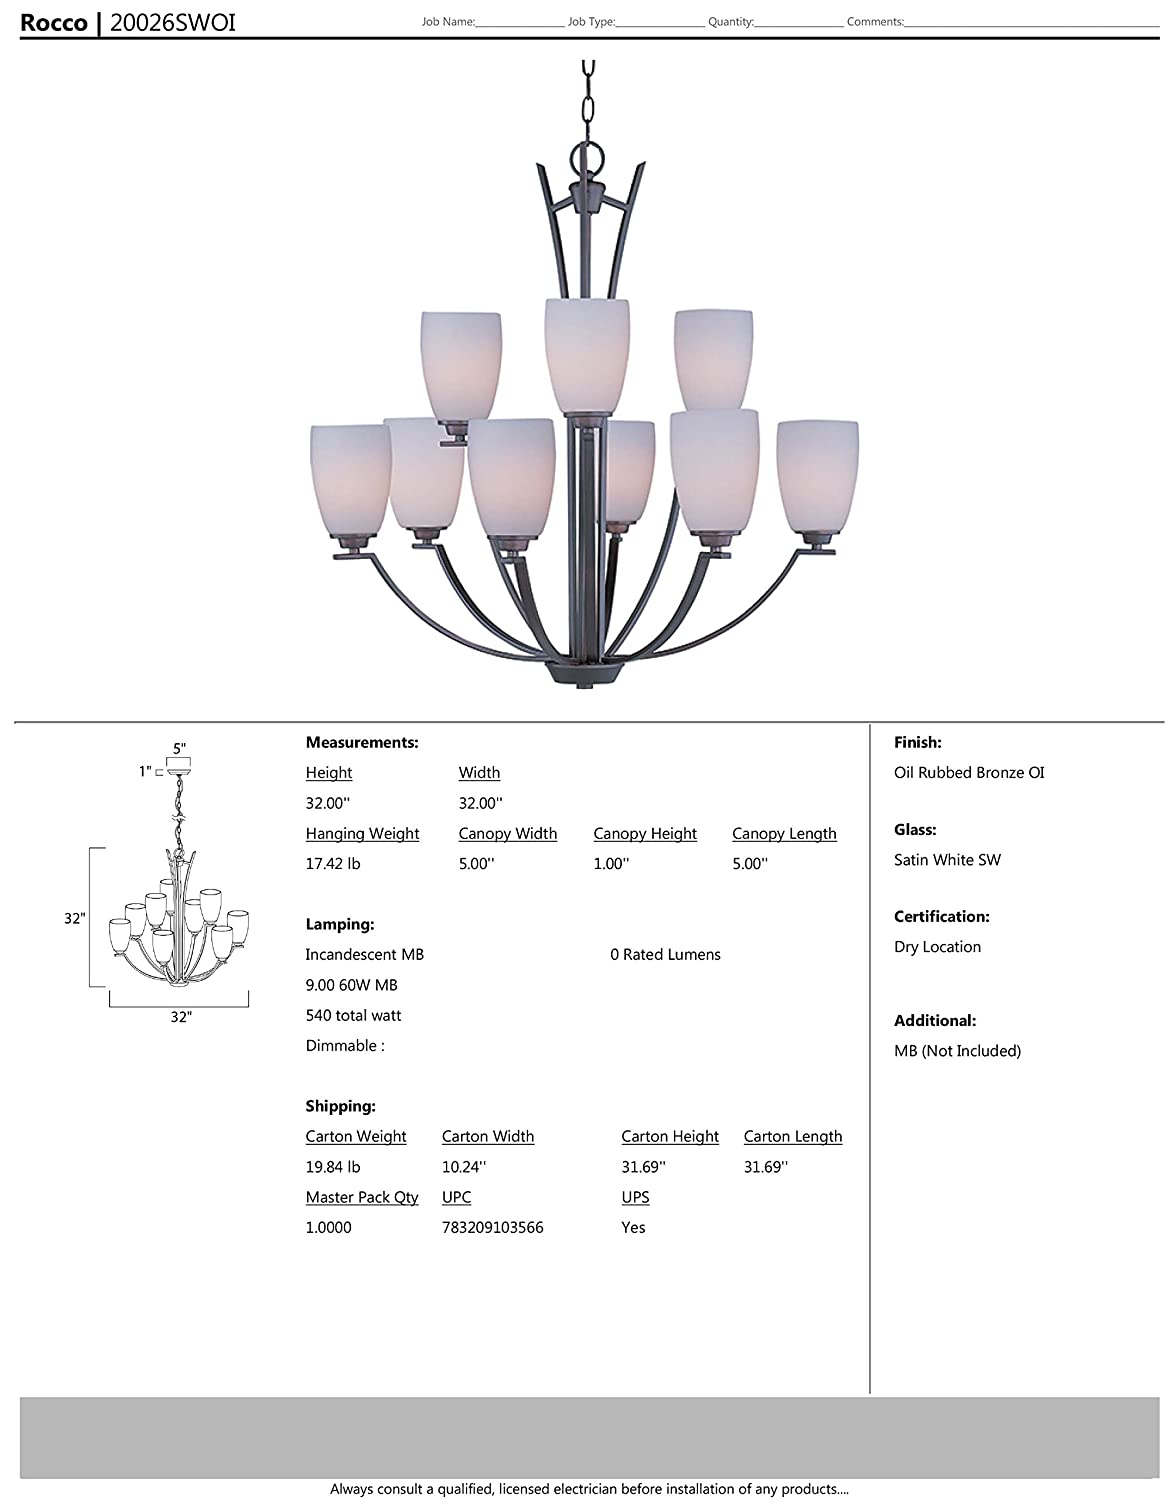 Maxim 20026swoi Rocco 9 Light Chandelier Oil Rubbed Bronze Finish Menorah Lighting Diagram Satin White Glass Mb Incandescent Bulb 100w Max Damp Safety Rating 2700k Color Temp